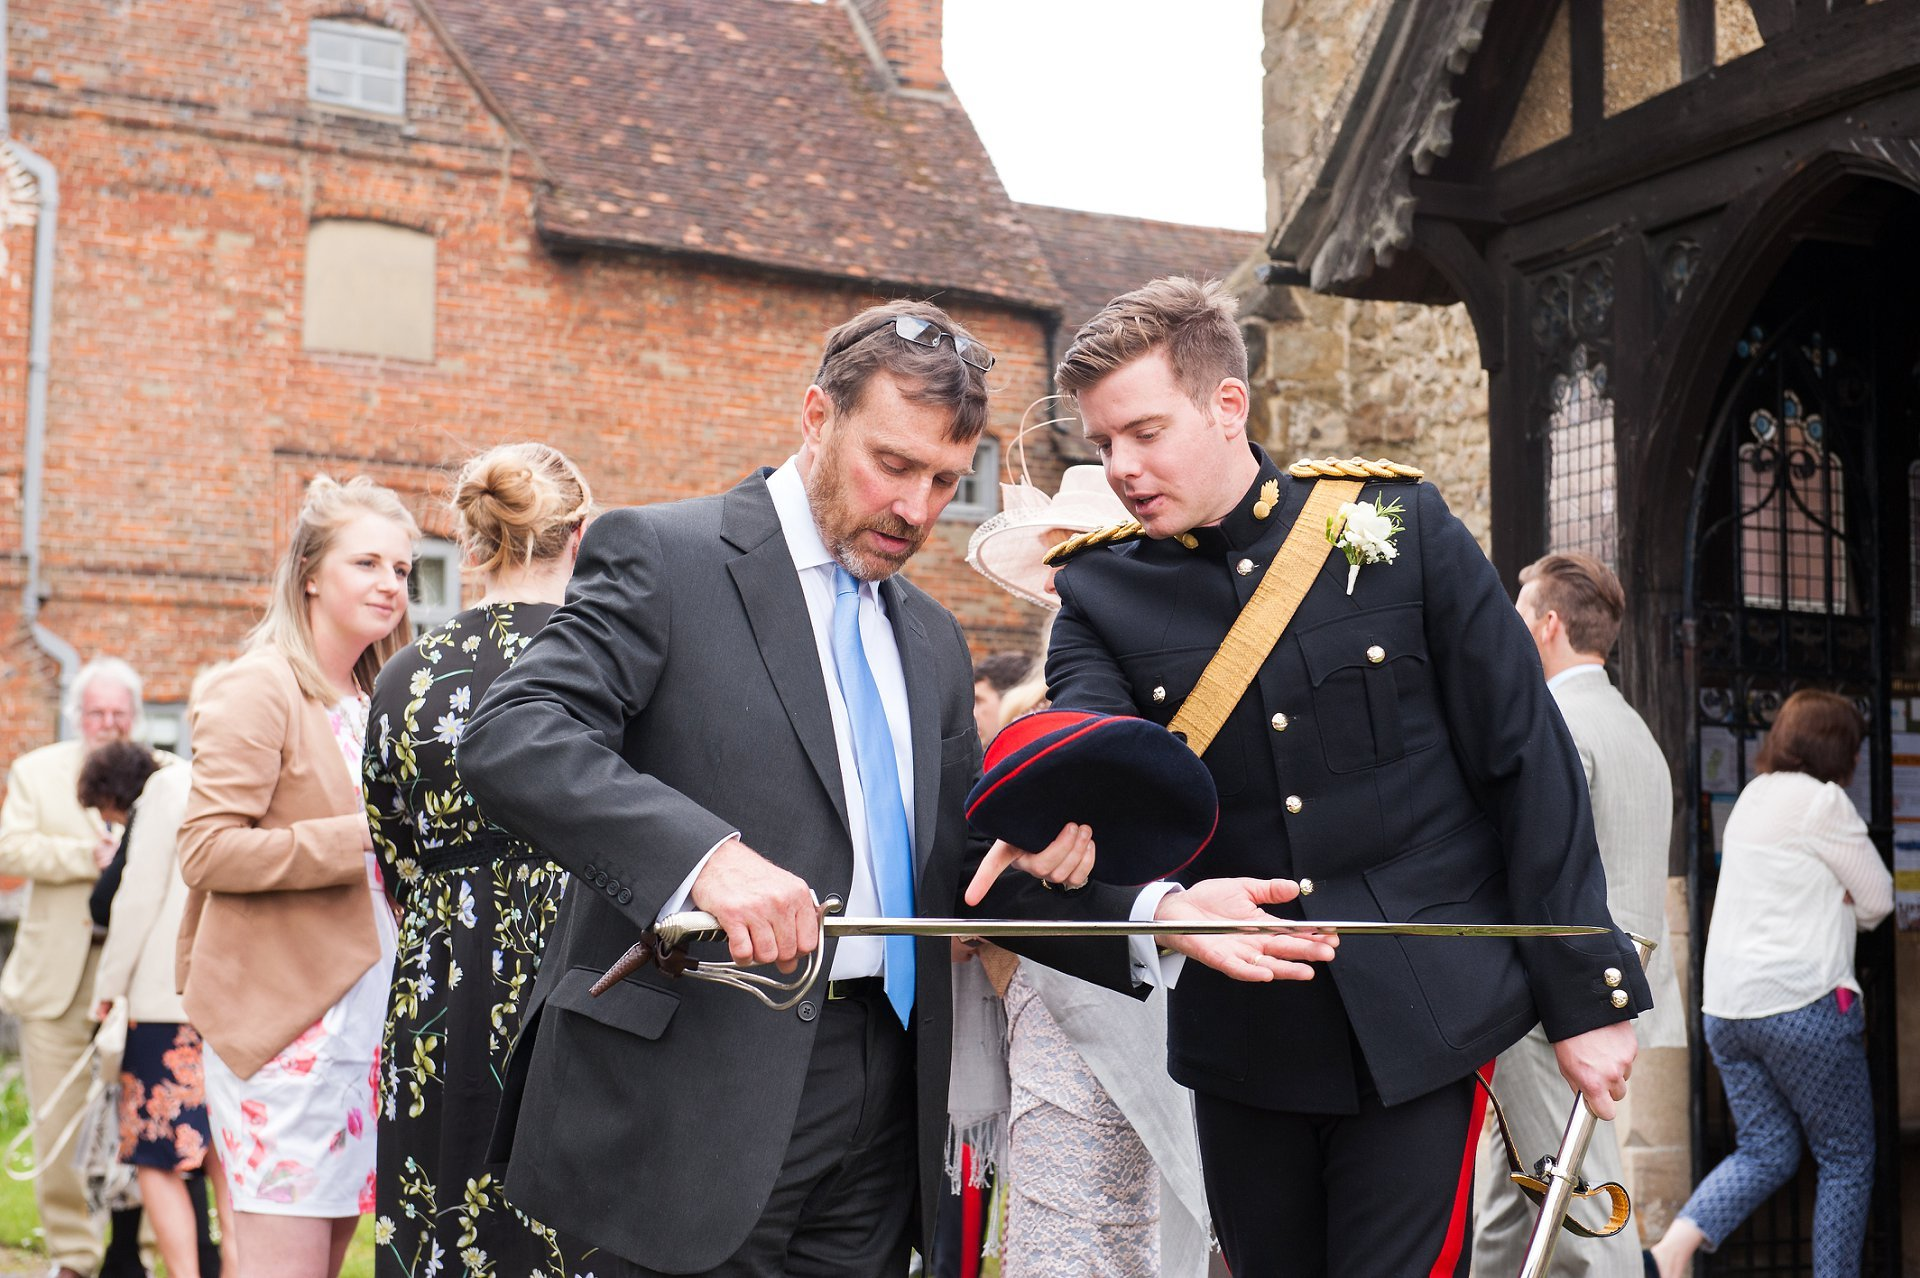 guest looks at groom, sam's, sword outside st mary's church, westerham